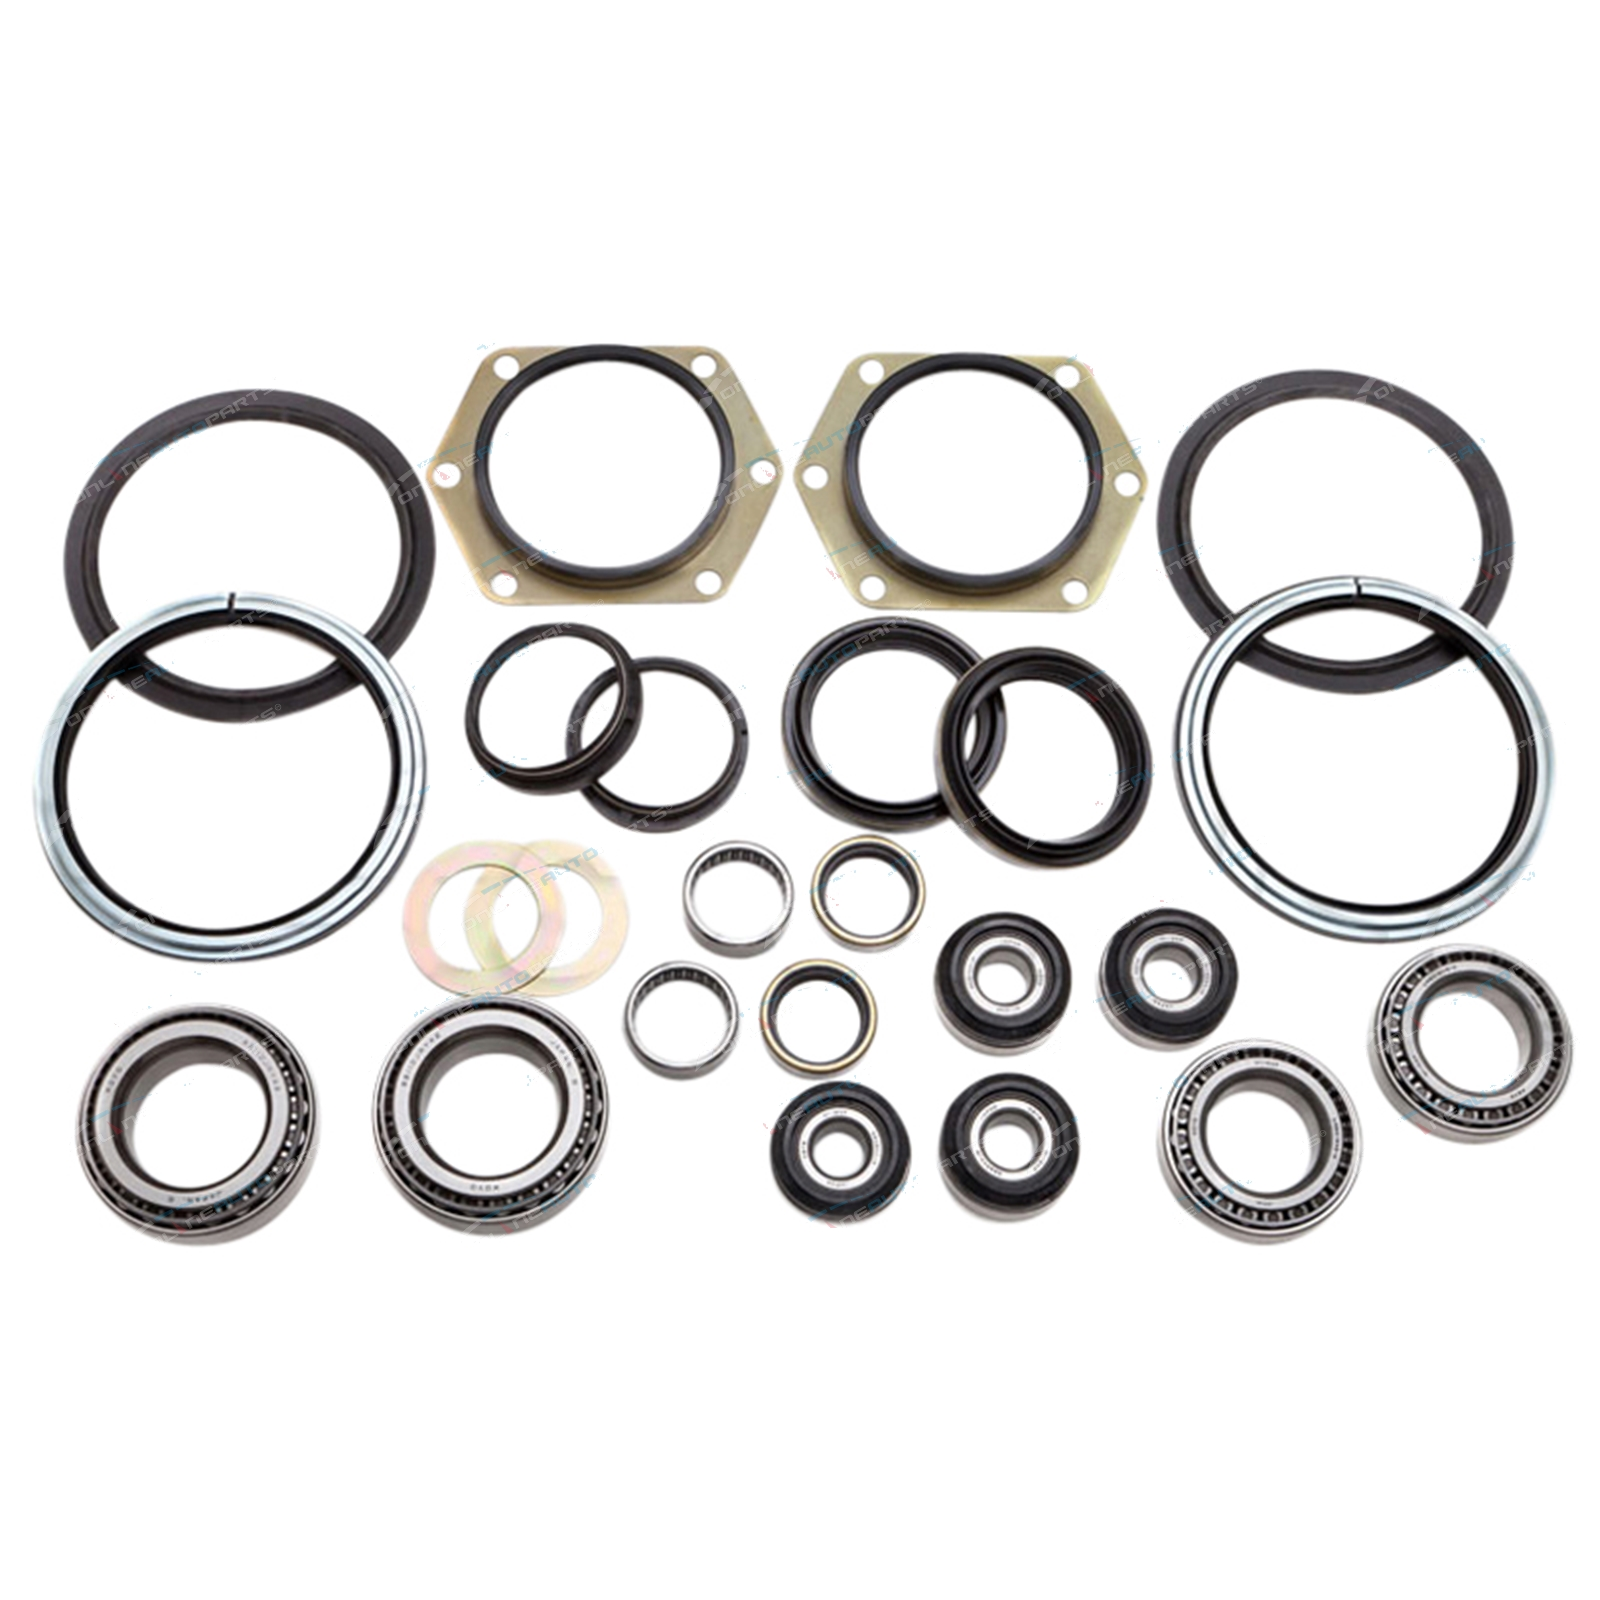 Swivel Hub King Pin Repair Kit Nissan Patrol GQ GR Y60